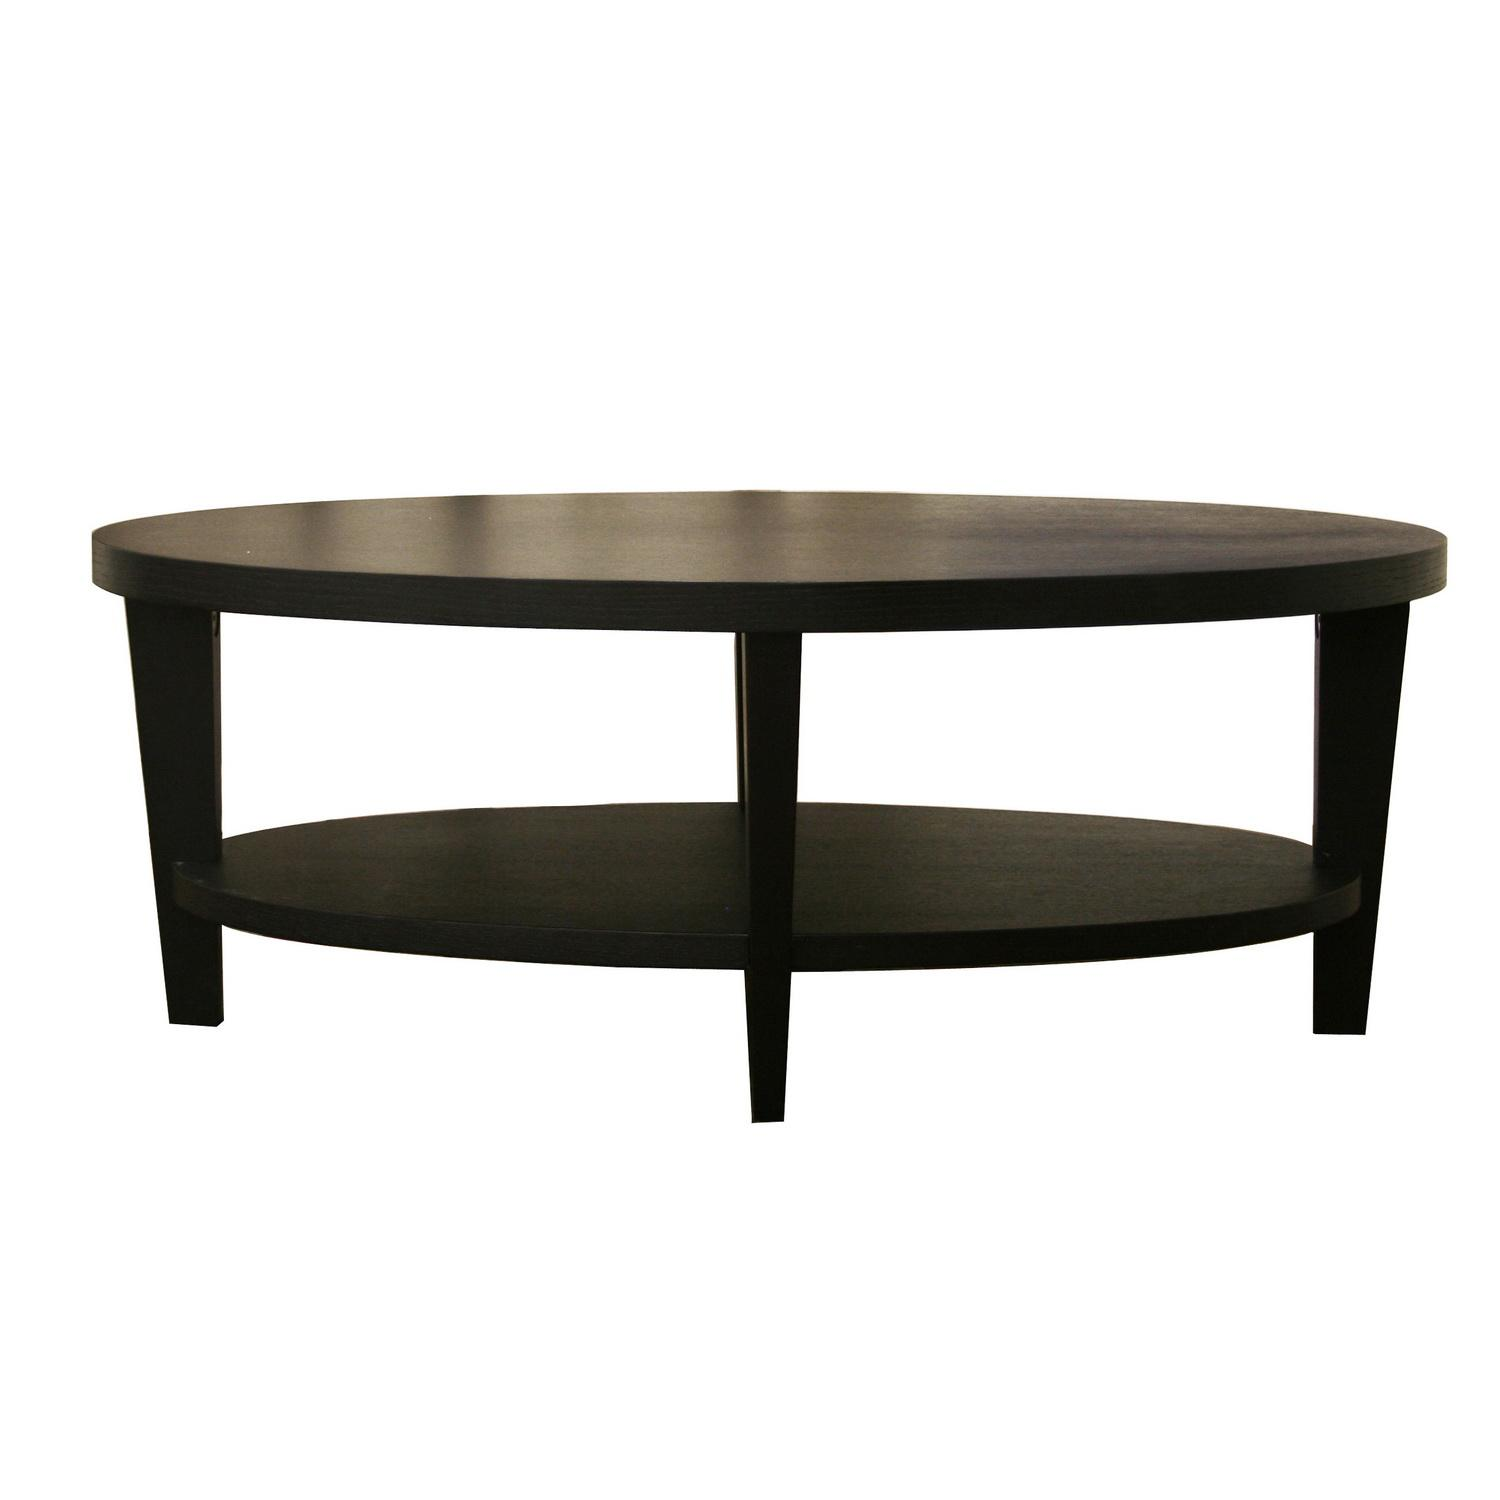 Modern Wood Coffee Table: Charleston Modern Oval Black Wood Coffee Table